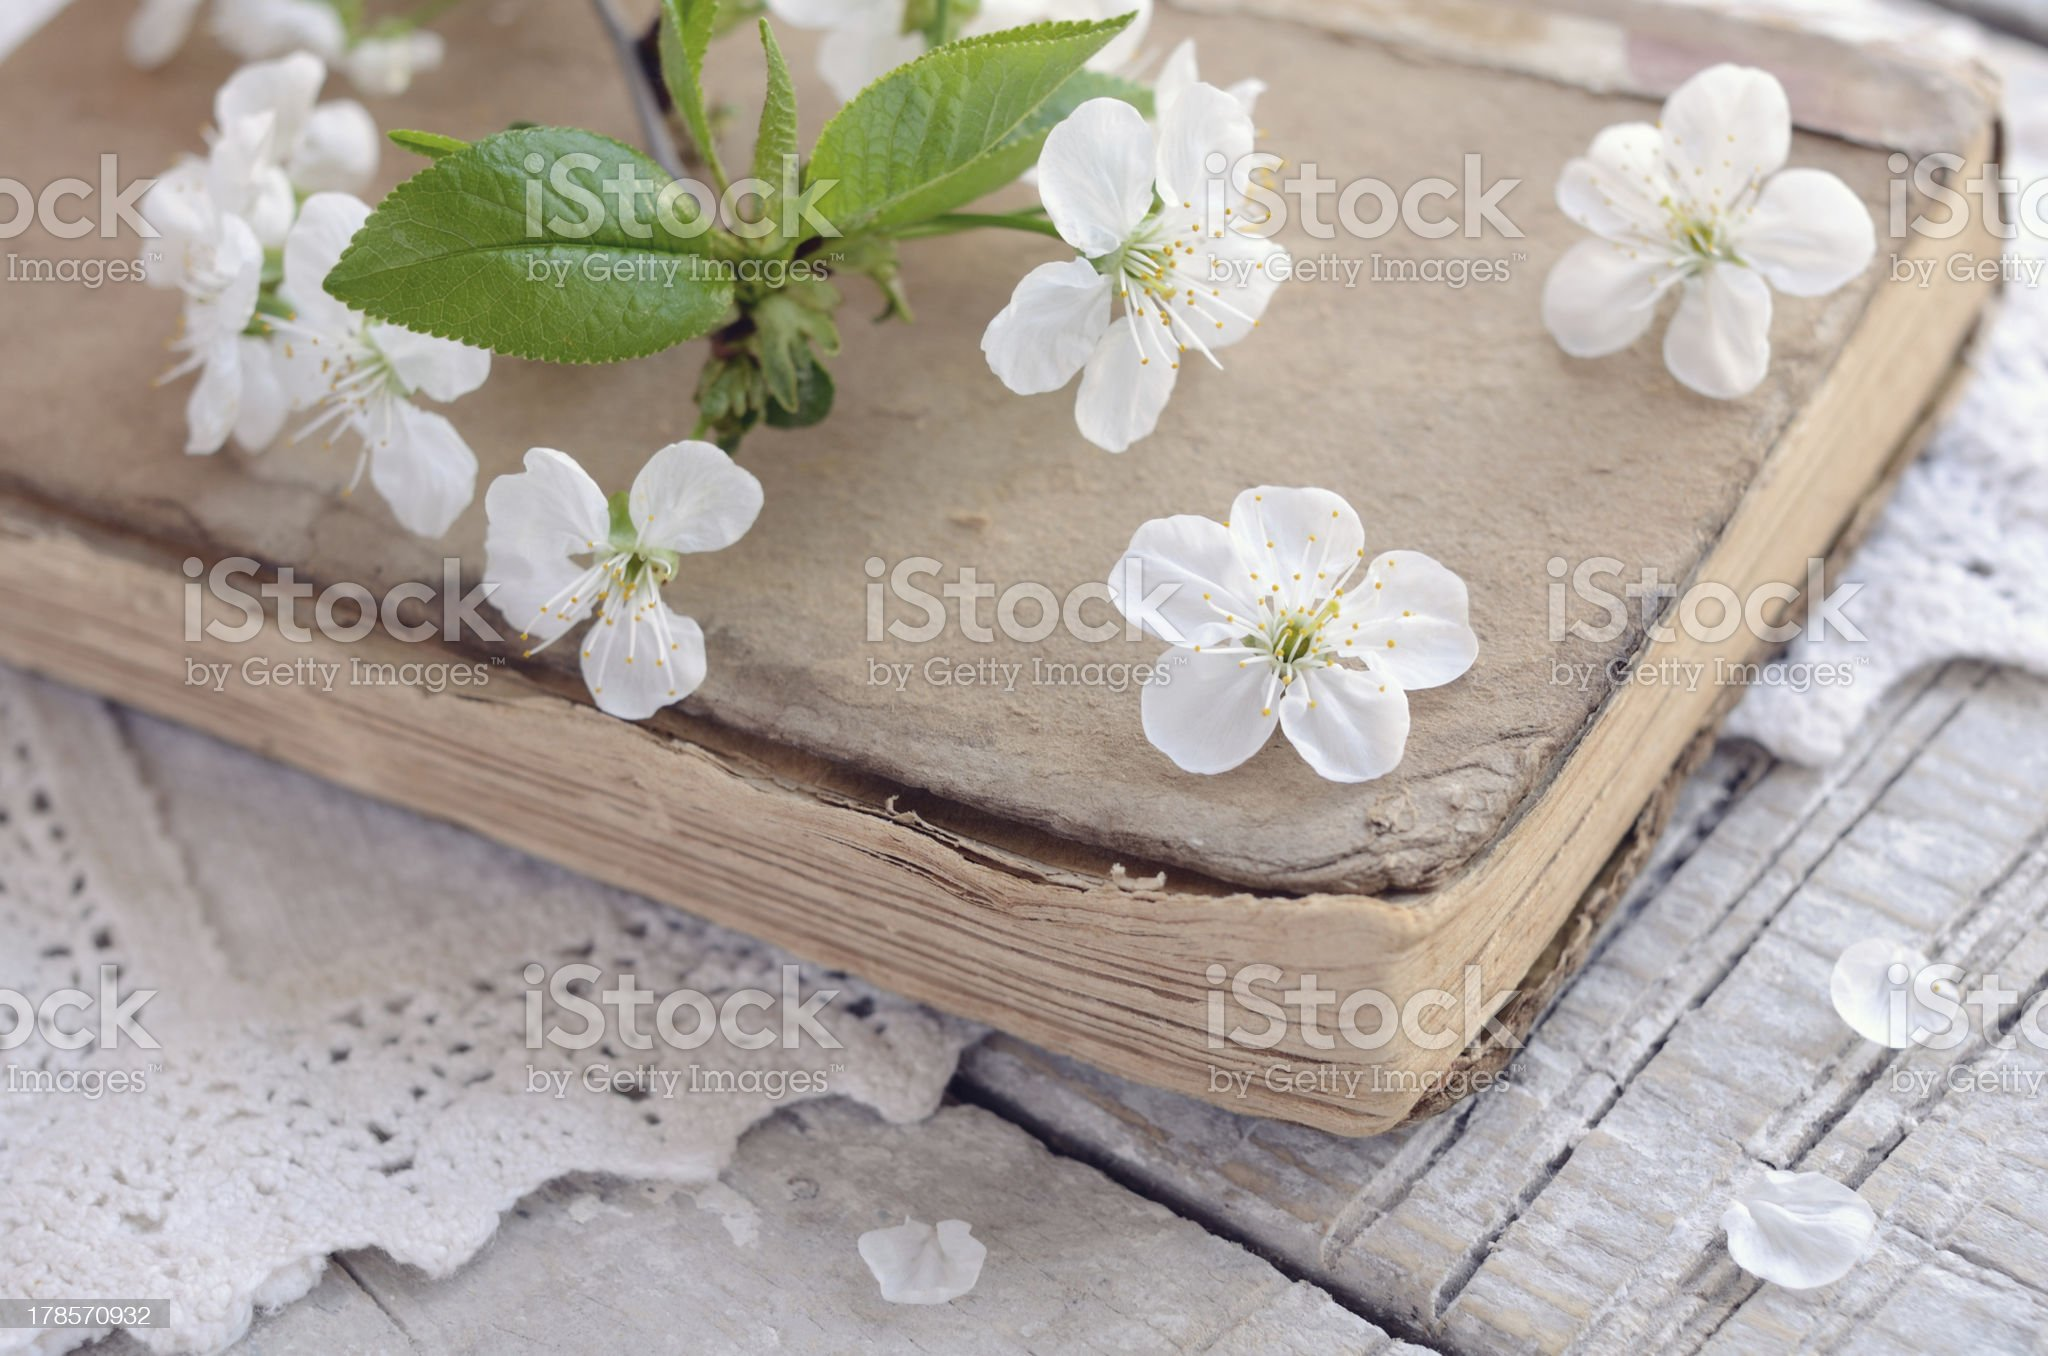 Cherry flowers laying upon old book on lace doily royalty-free stock photo